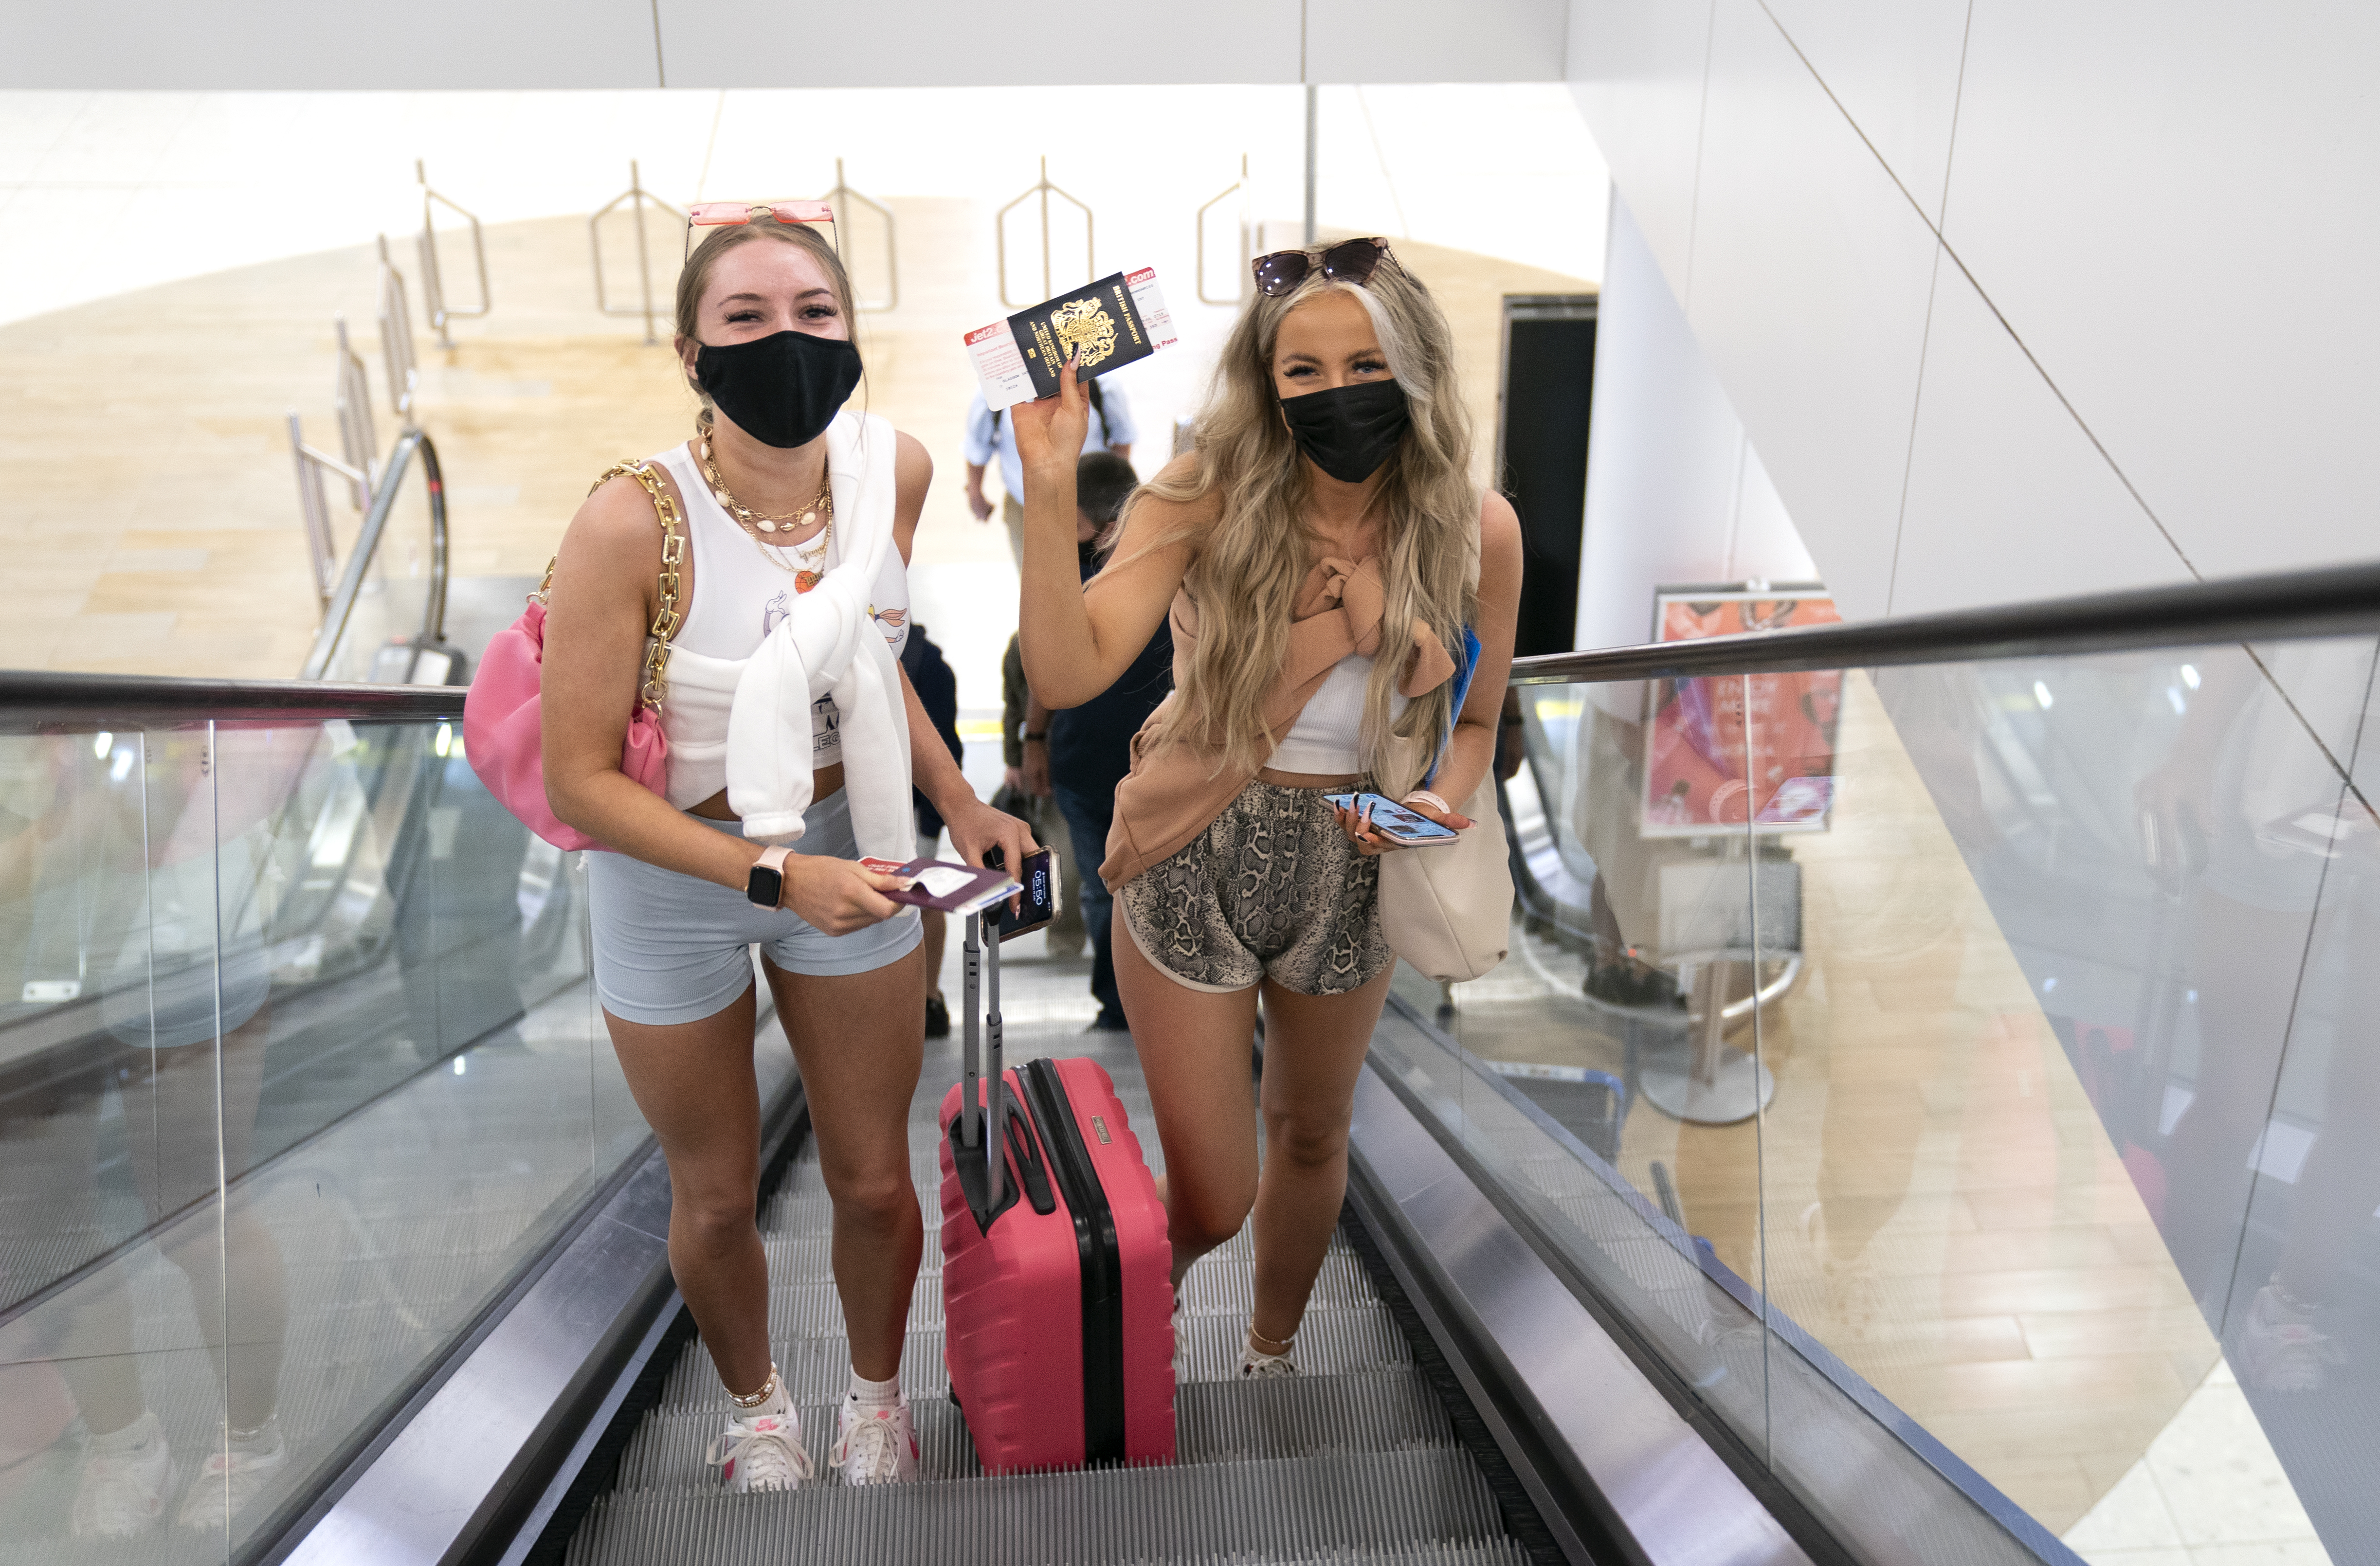 <p>Friends Poppy (left) and Shannon, both aged 20 and from Glasgow, head towards the departure gate at Glasgow Airport after checking in for their flight to Ibiza. Picture date: Monday July 19, 2021.</p>